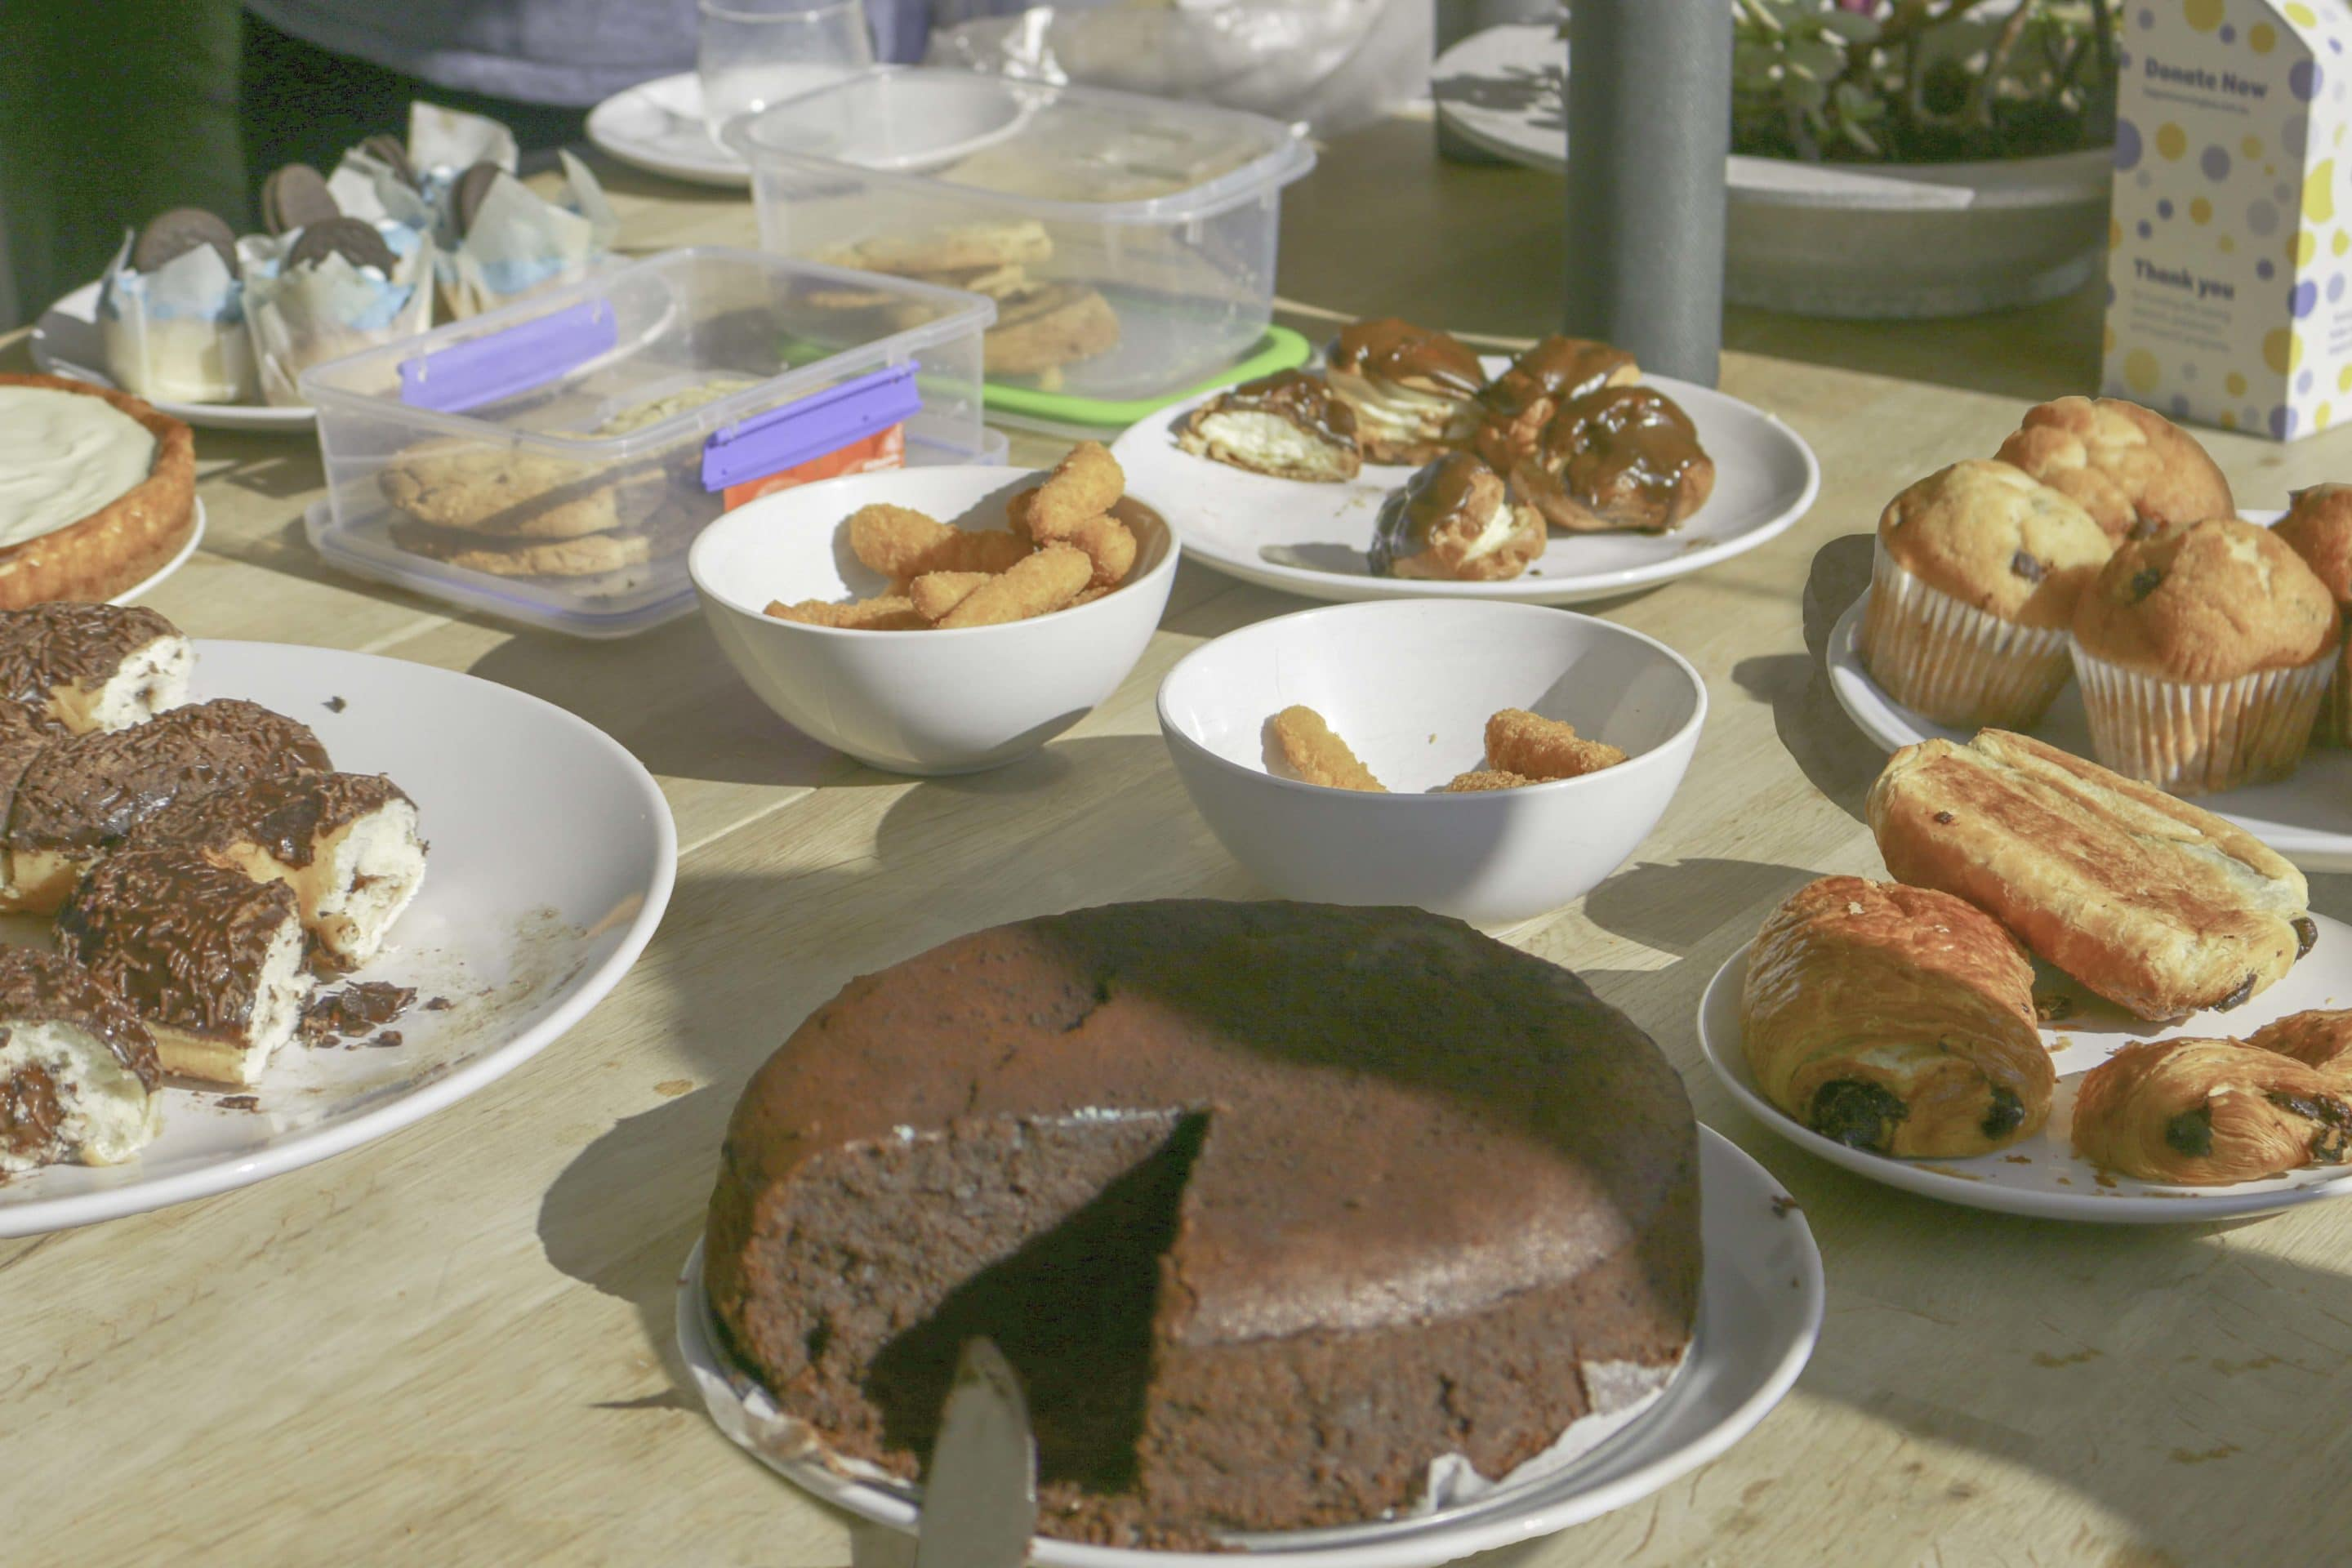 Baked treats at the Biggest Morning Tea at Publift 2019